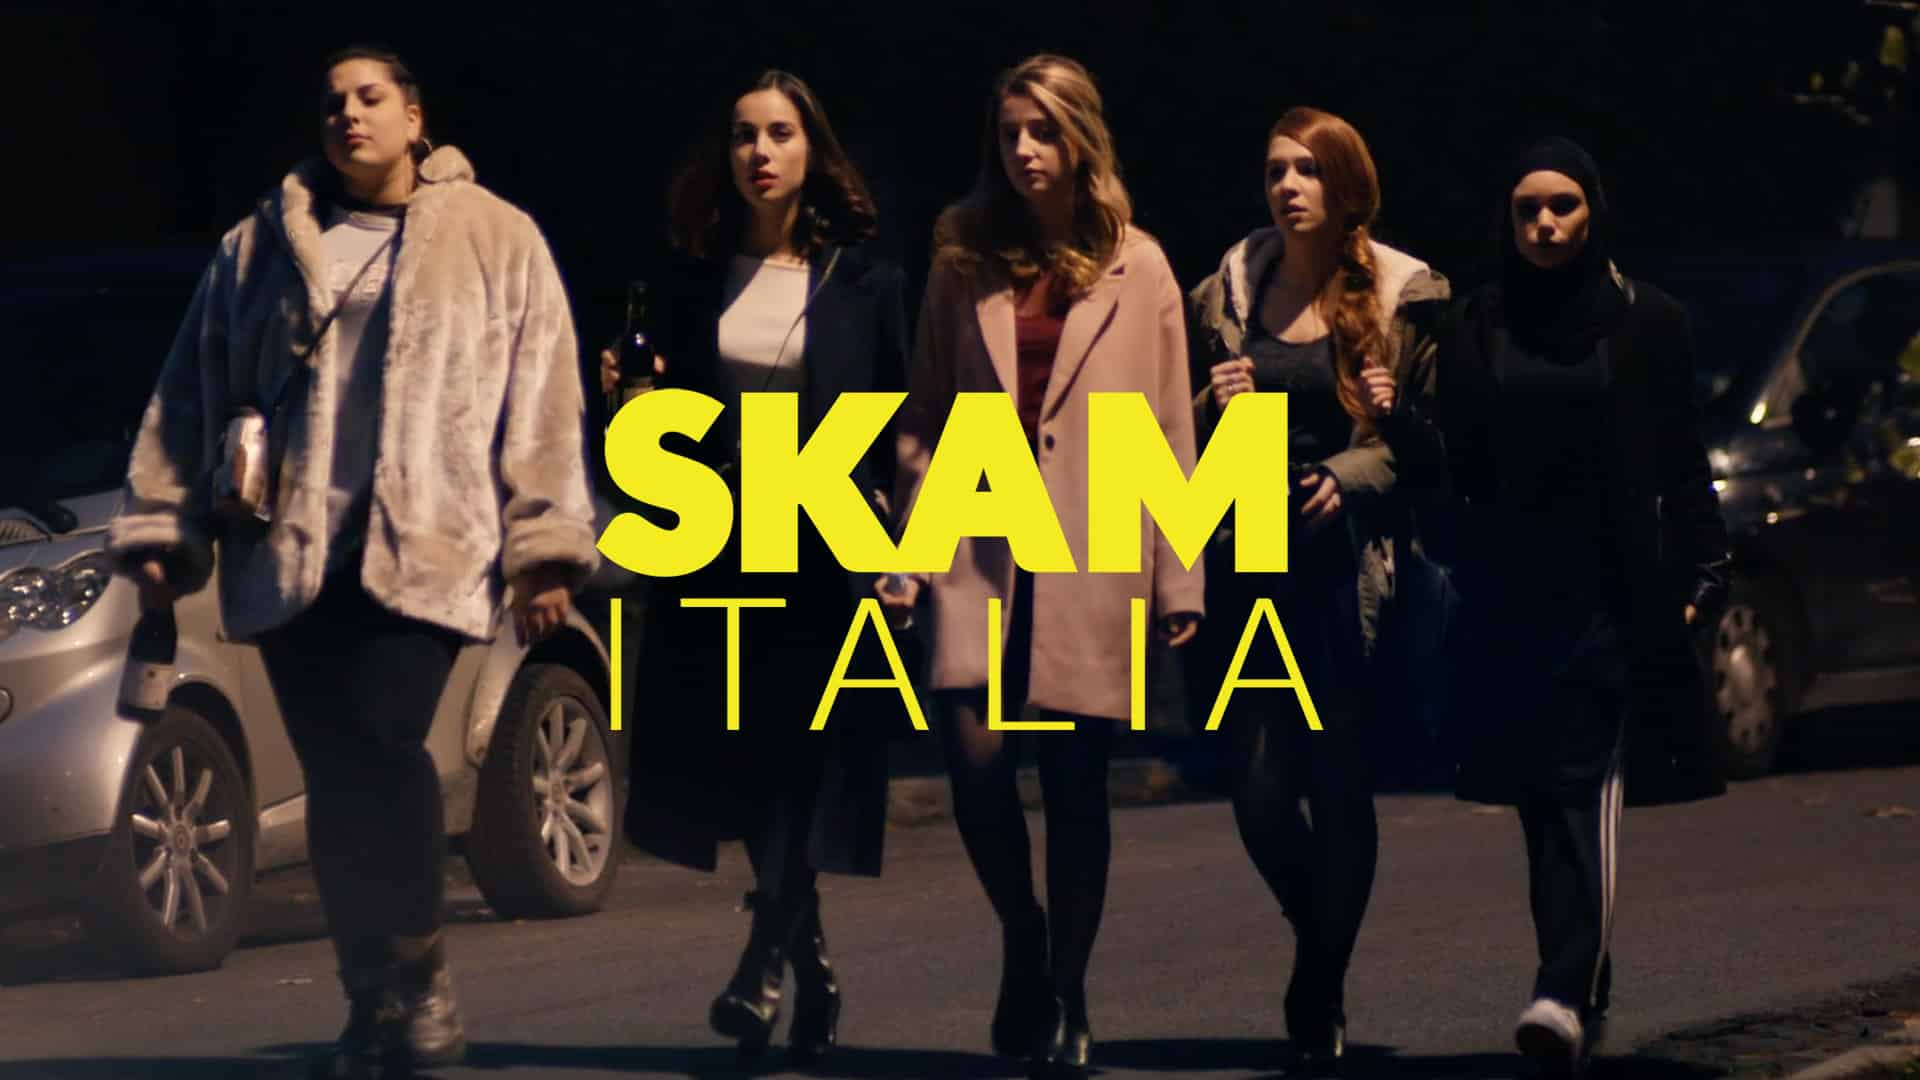 Skam Italia Cinematographe.it